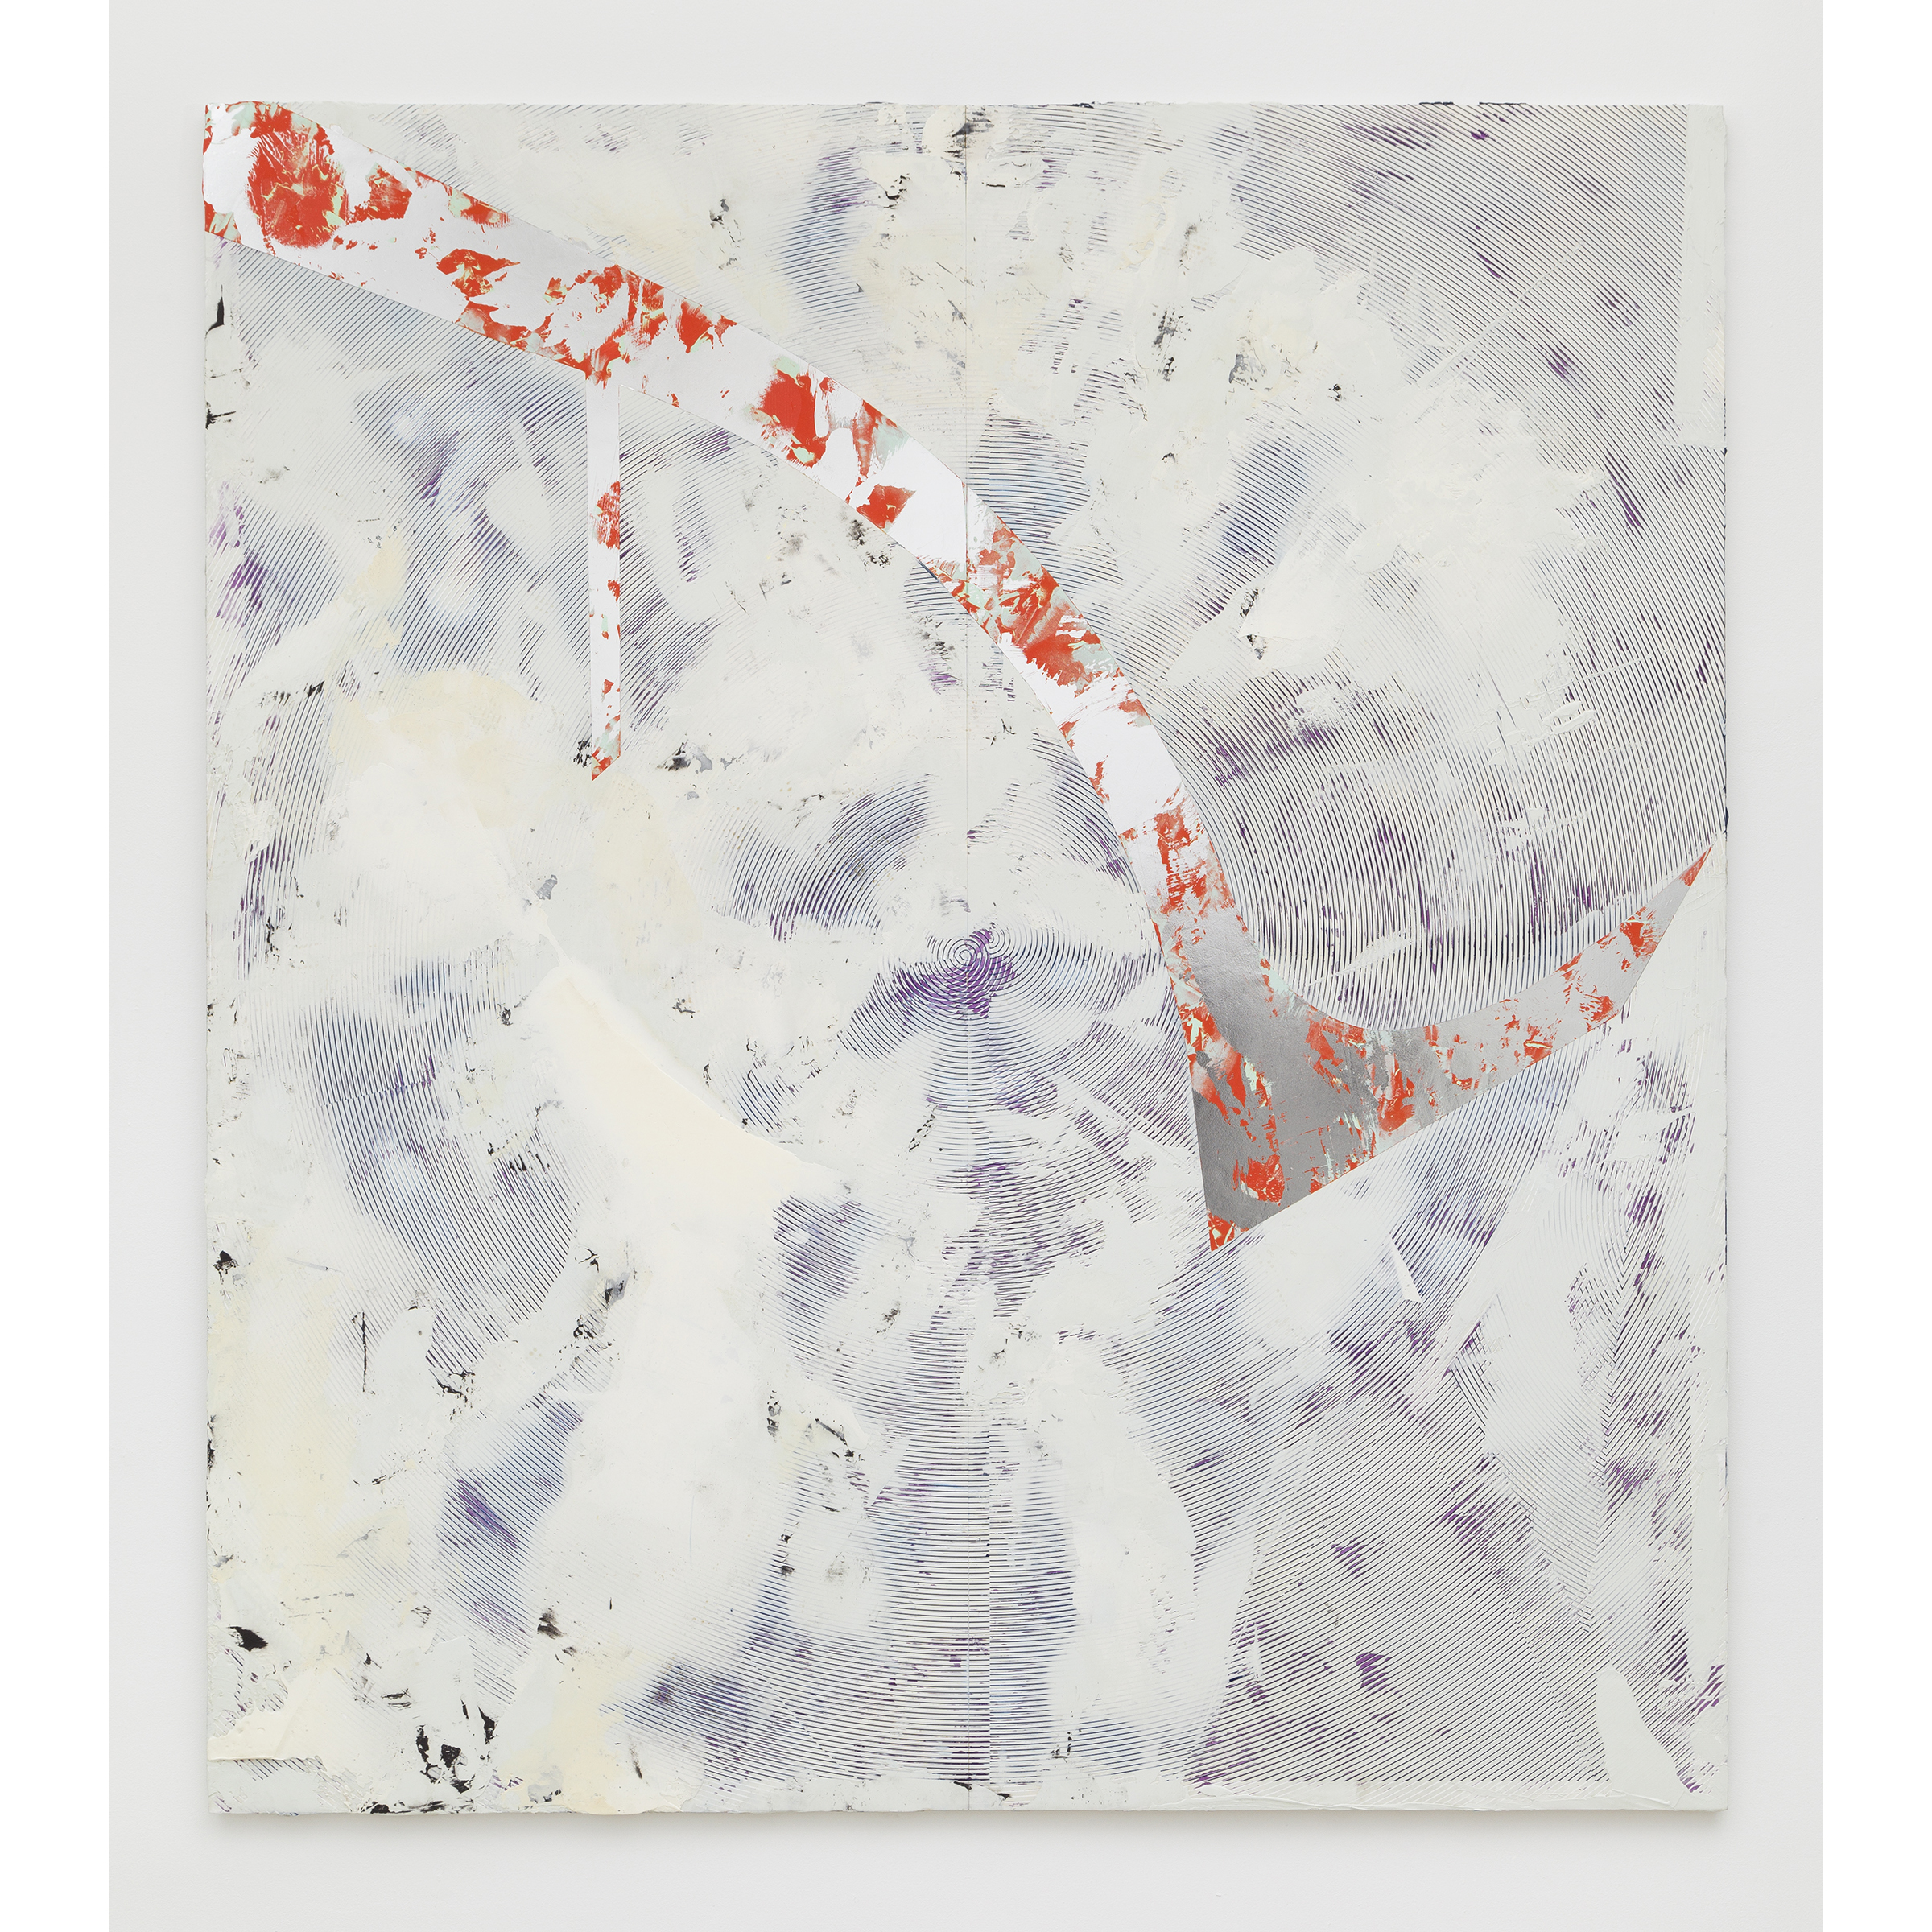 Nicolas Roggy, Untitled , 2014,primer, modeling paste, pigment,acrylic paint, silver leaf on PVC,92.9 x 82.7 x 1 in